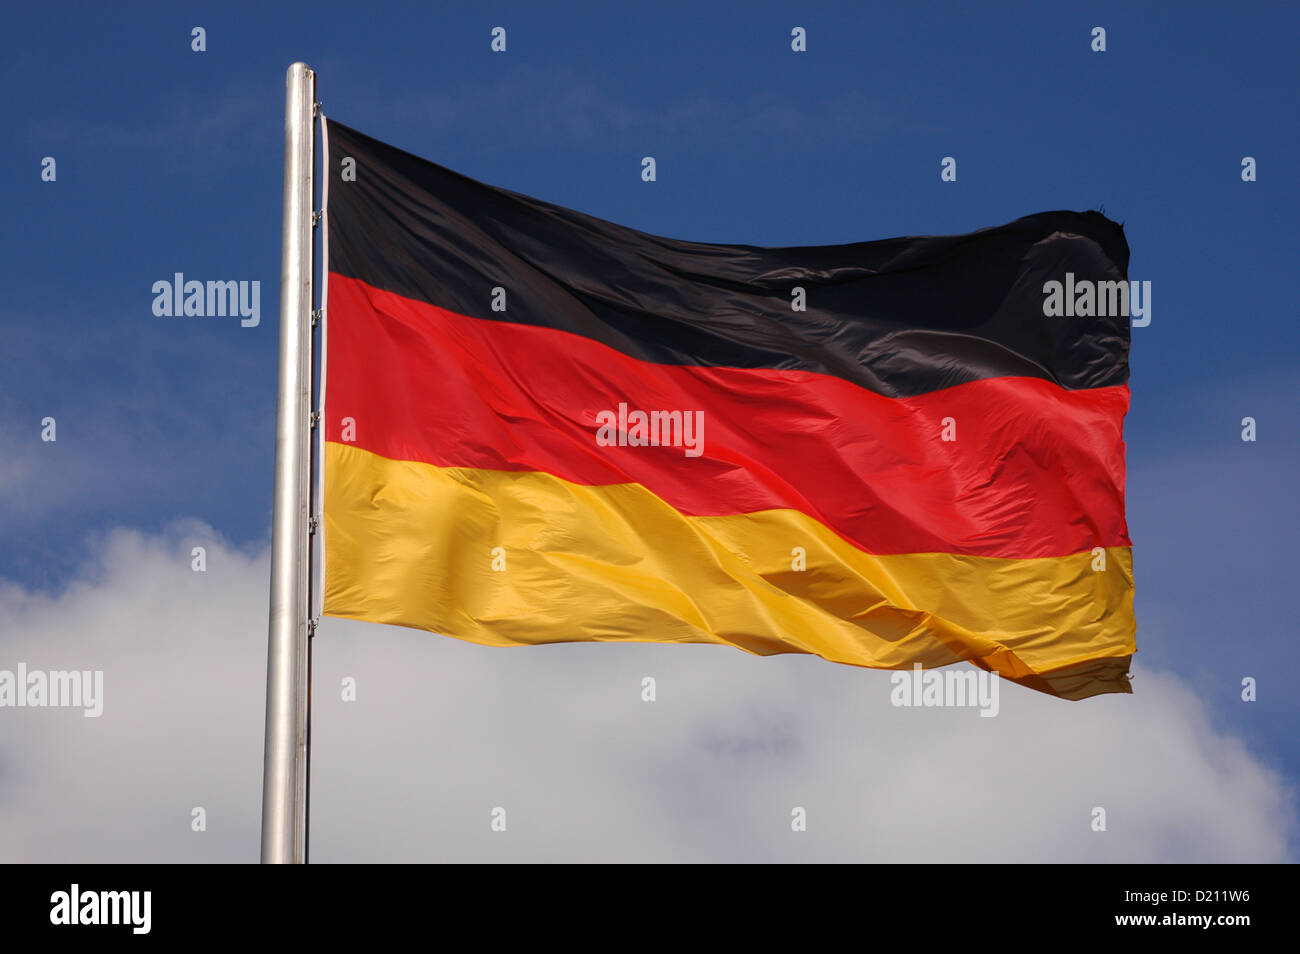 German flag. Berlin. Germany. - Stock Image